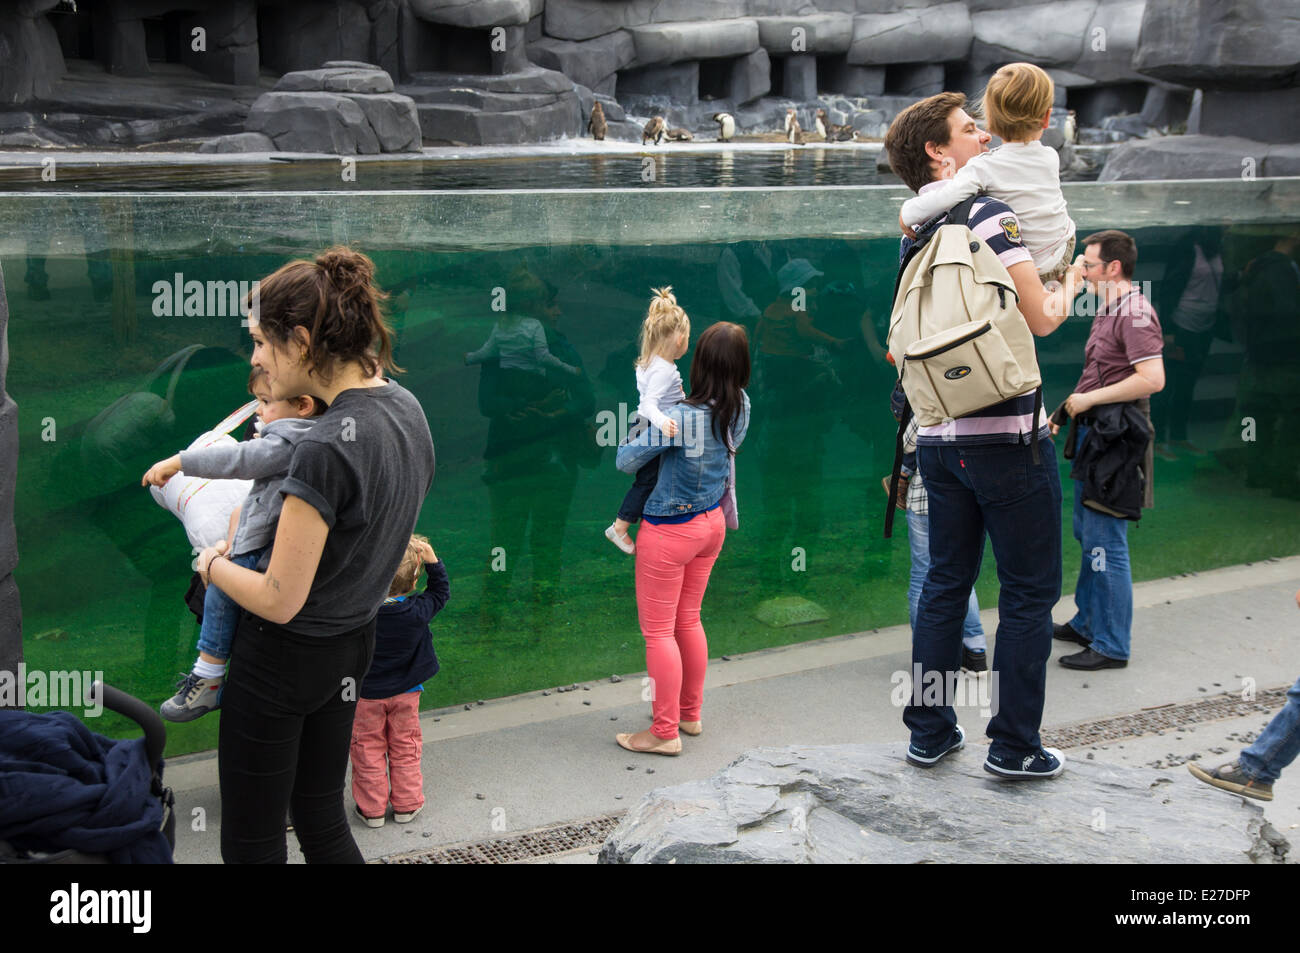 Visitors looking at penguins through the glass, Paris Zoo France - Stock Image